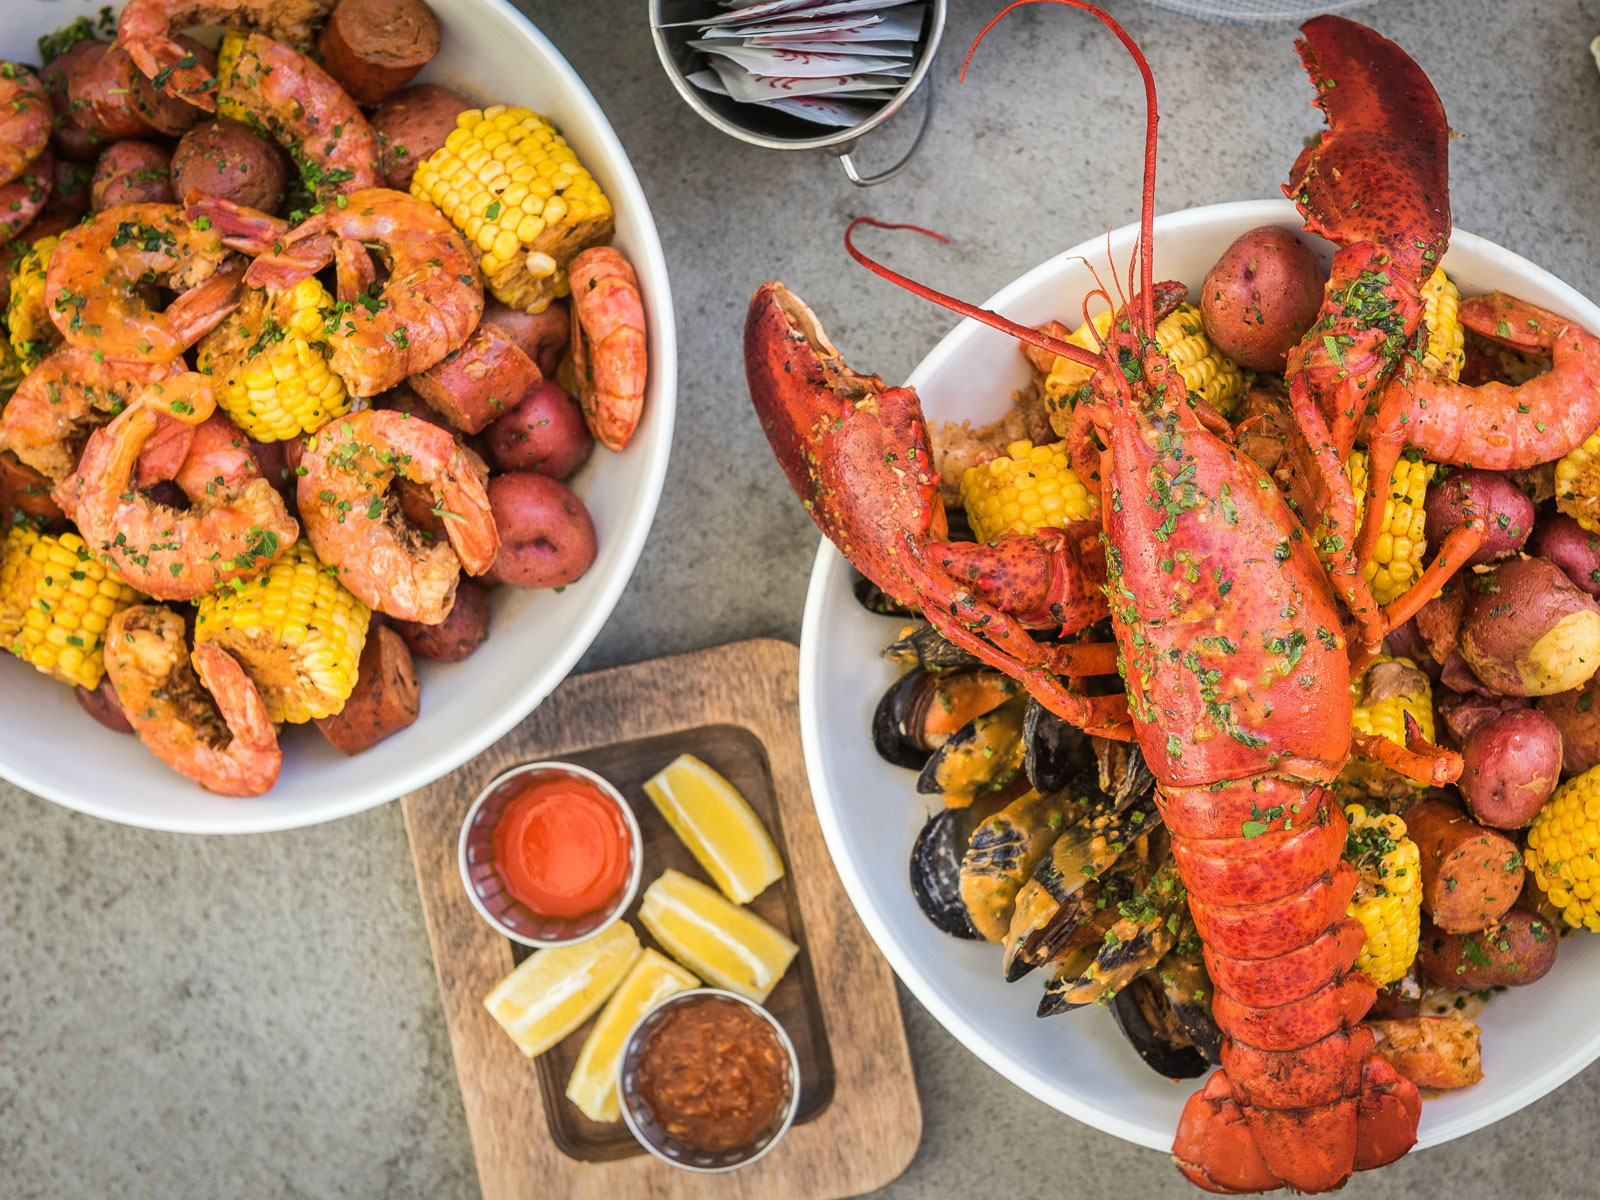 José Andrés Just Opened a Pop-up Crab Shack for the Summer